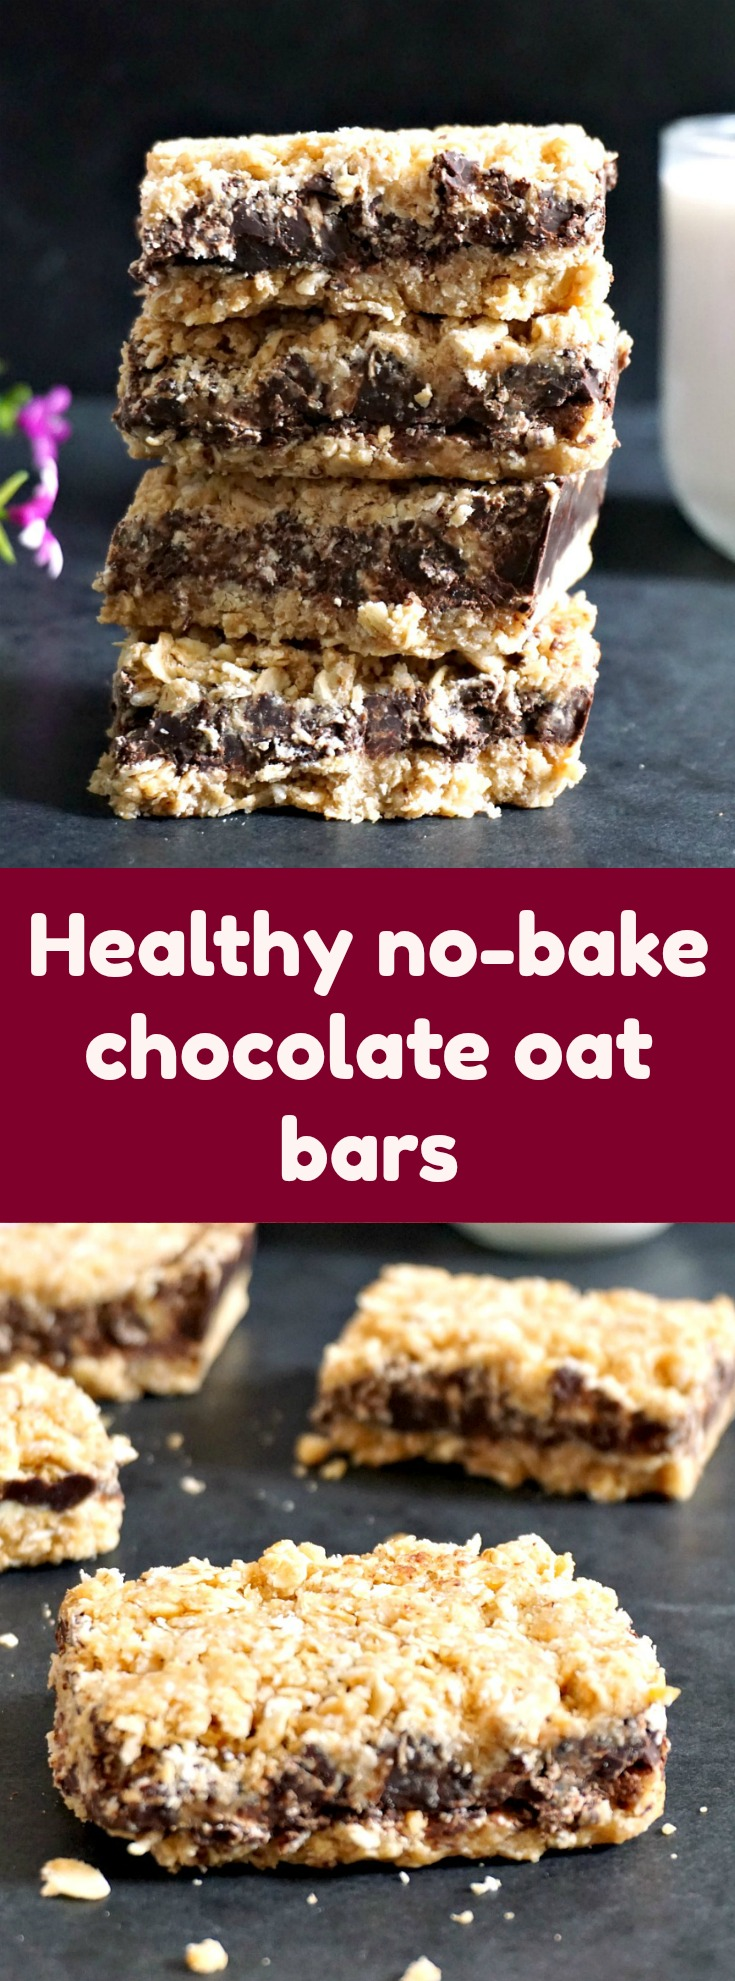 Healthy no-bake chocolate oat bars with peanut butter {V+GF}